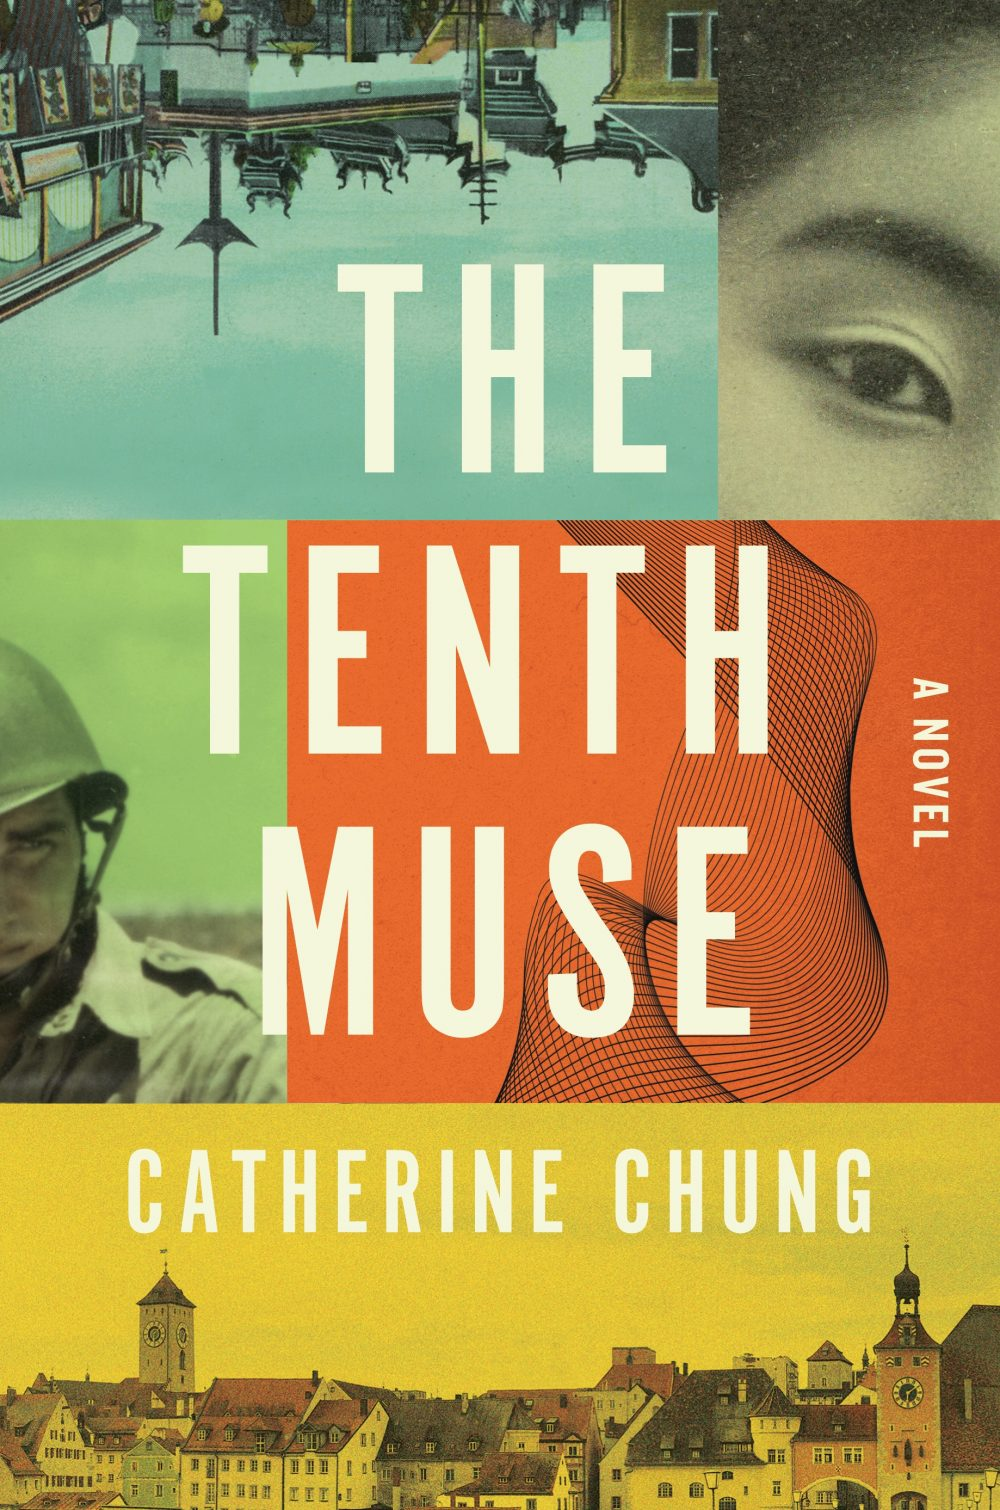 In Catherine Chung's The Tenth Muse, one woman seeks roots in family and math